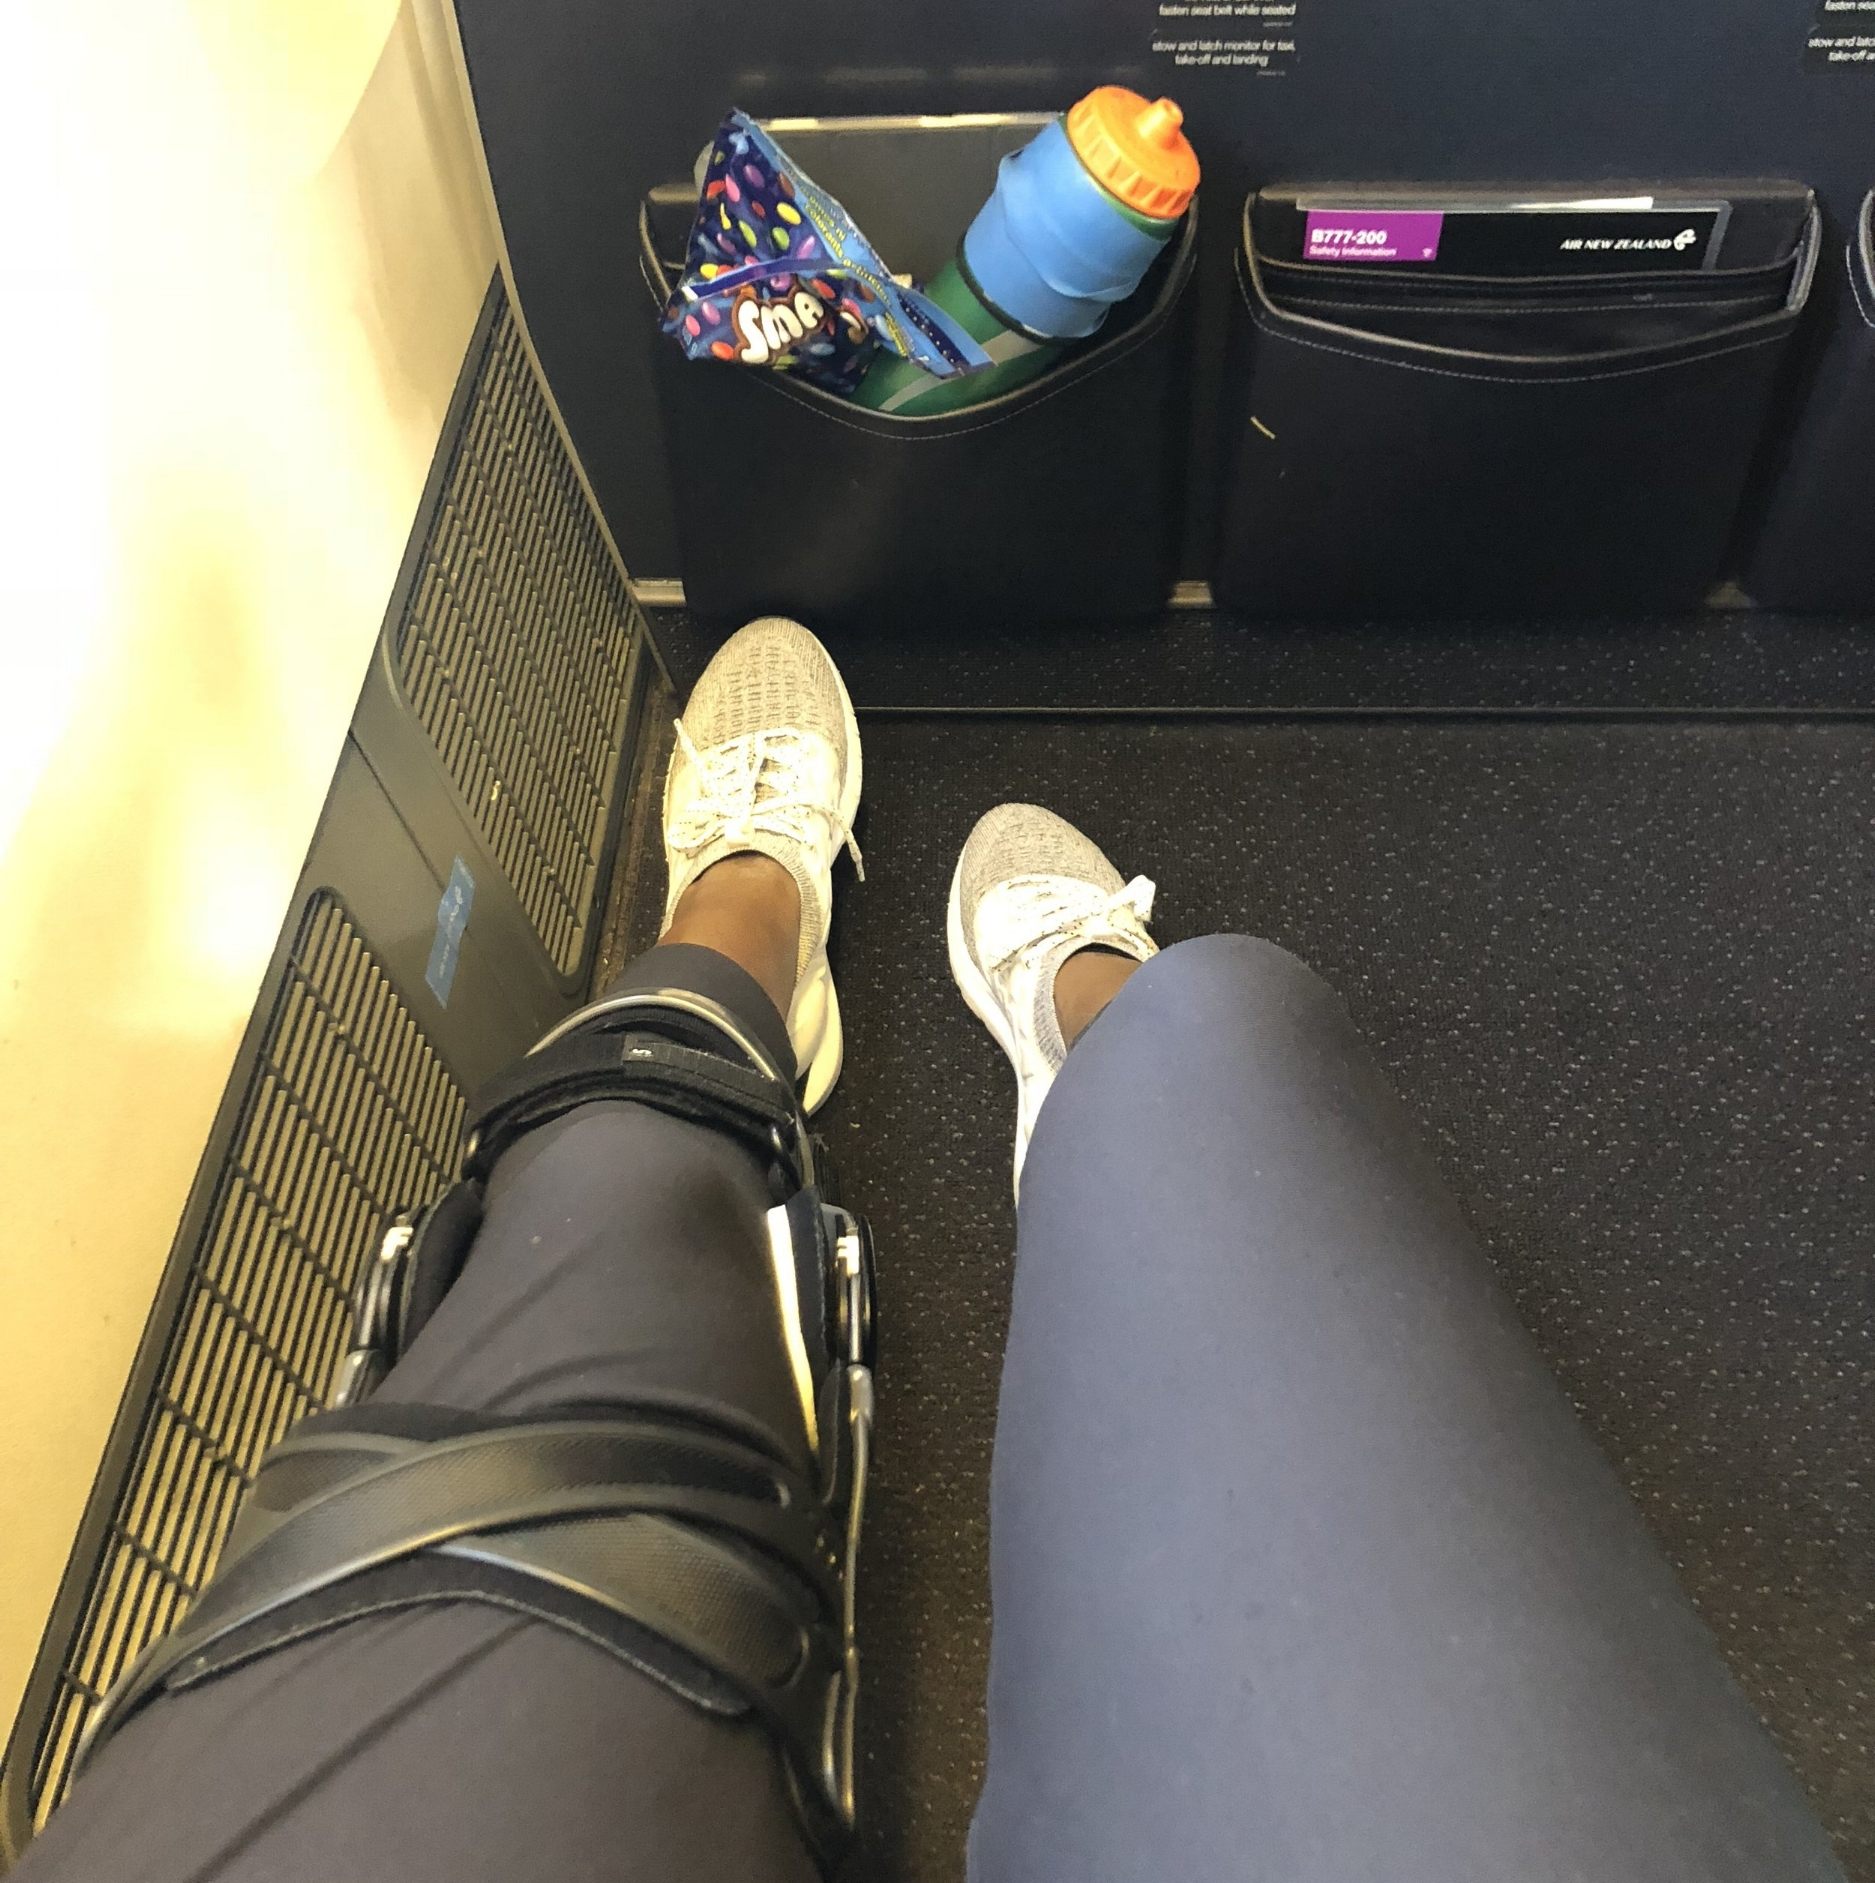 Brace life on the plane. Also packing my essentials, water and smarties!